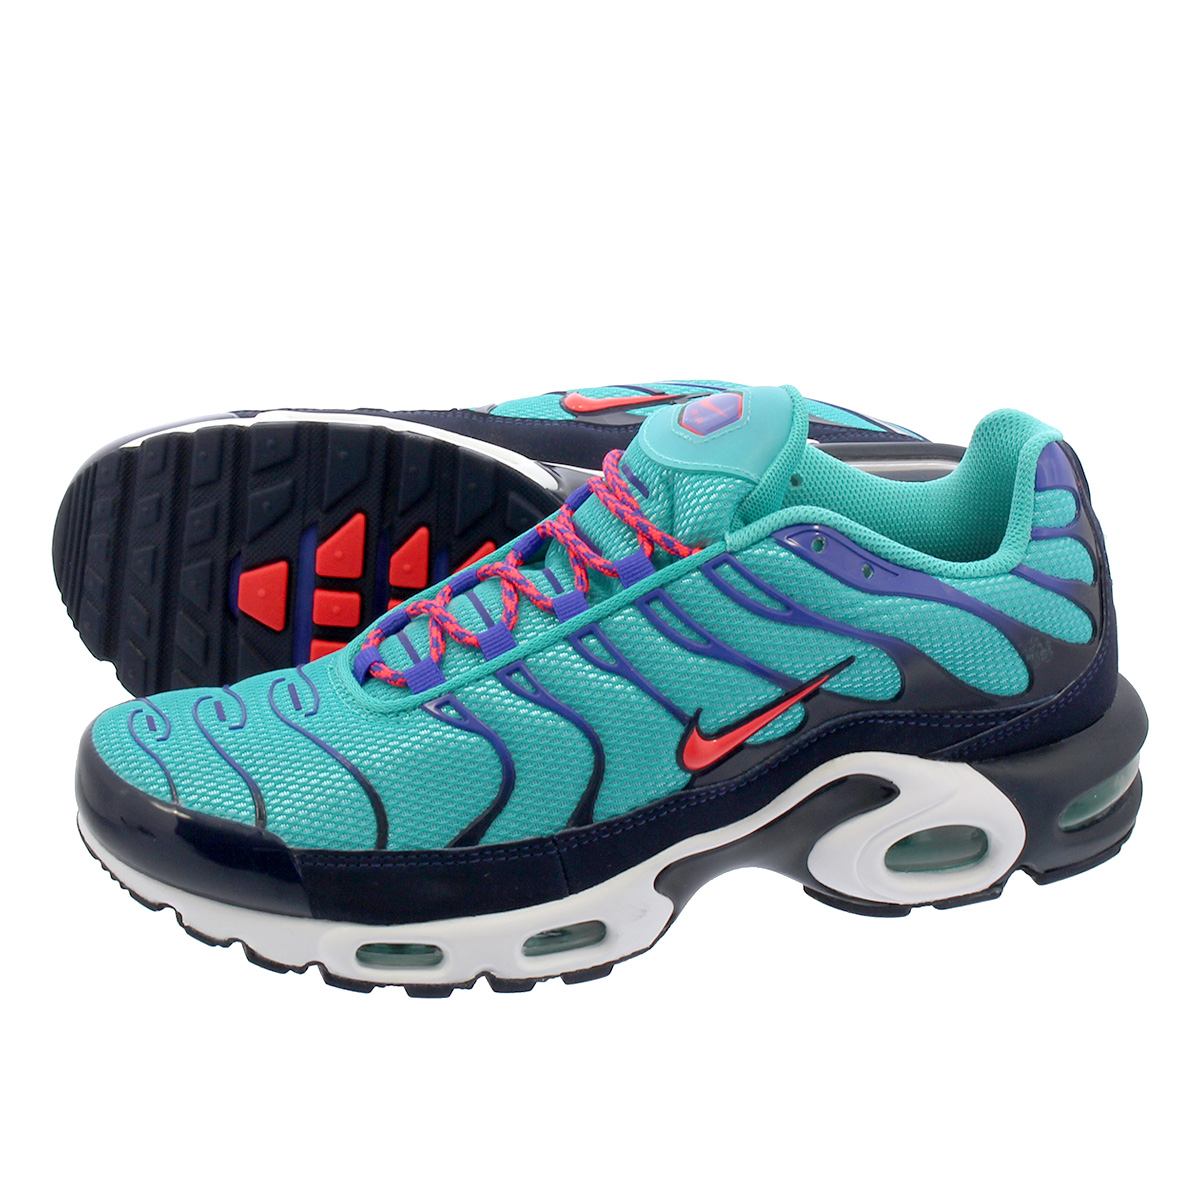 LOWTEX PLUS  NIKE AIR MAX PLUS Kie Ney AMAX plus HYPER JADE FLASH ... 1baf02162